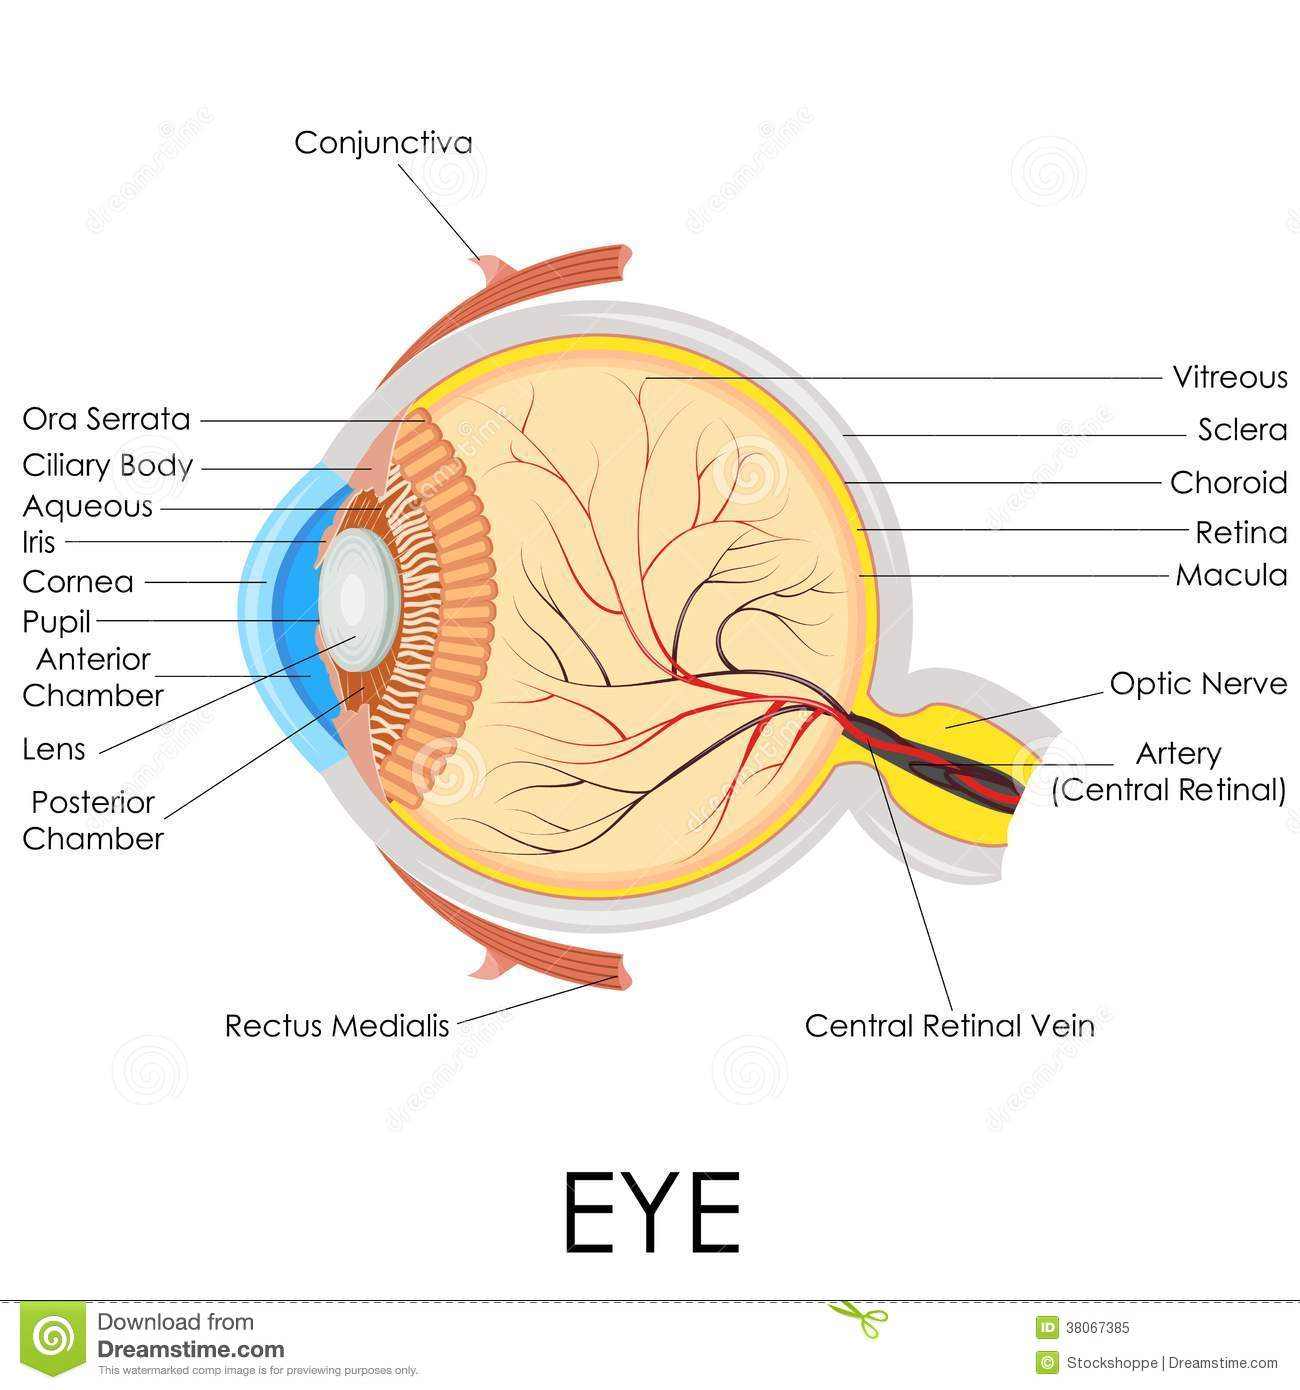 Human Eye Anatomy stock vector. Illustration of ocular - 38067385